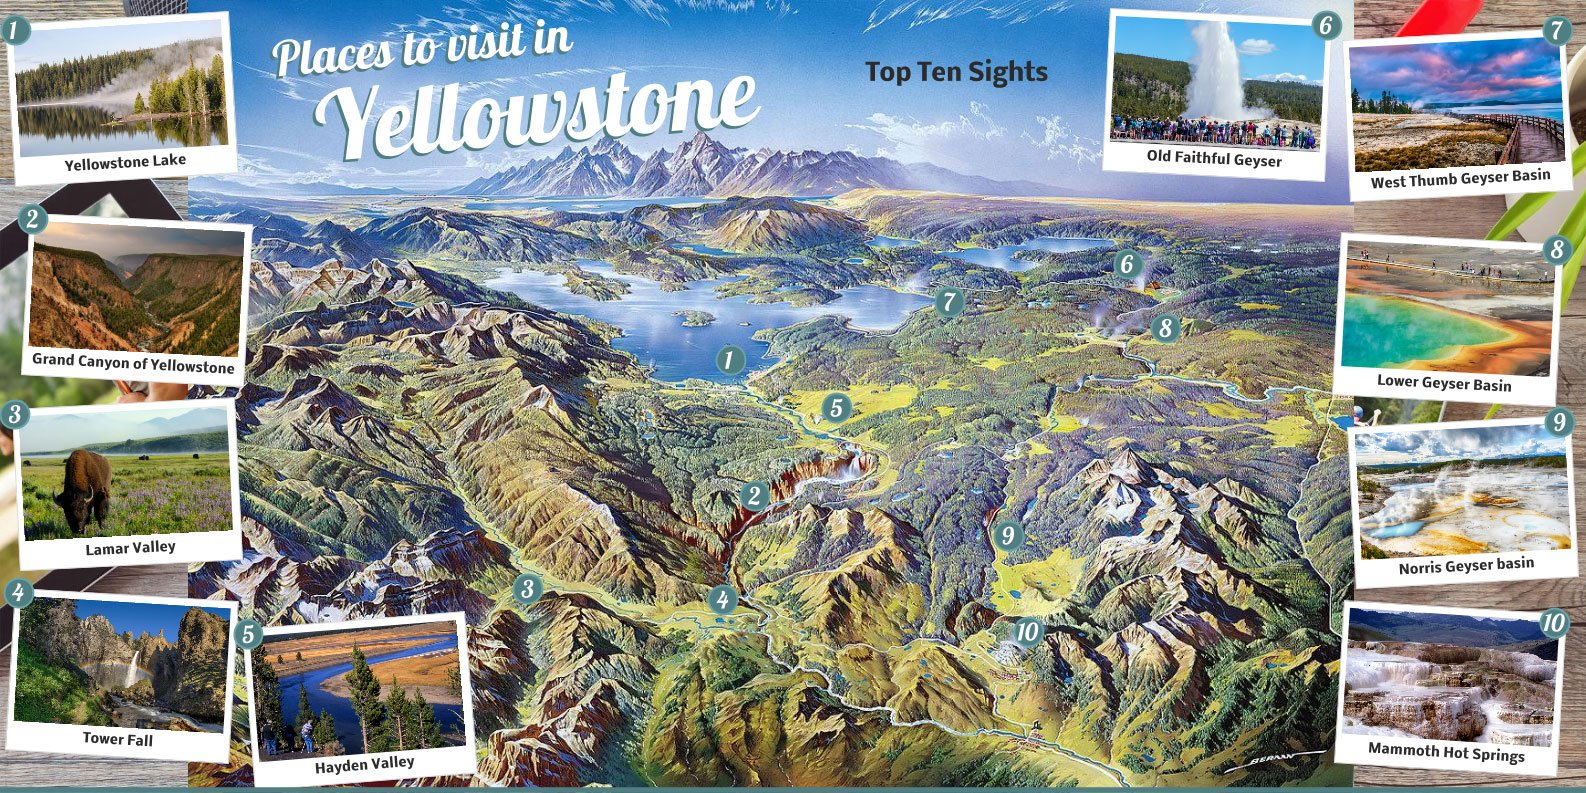 Yellowstone-Top10-Places-to-visit